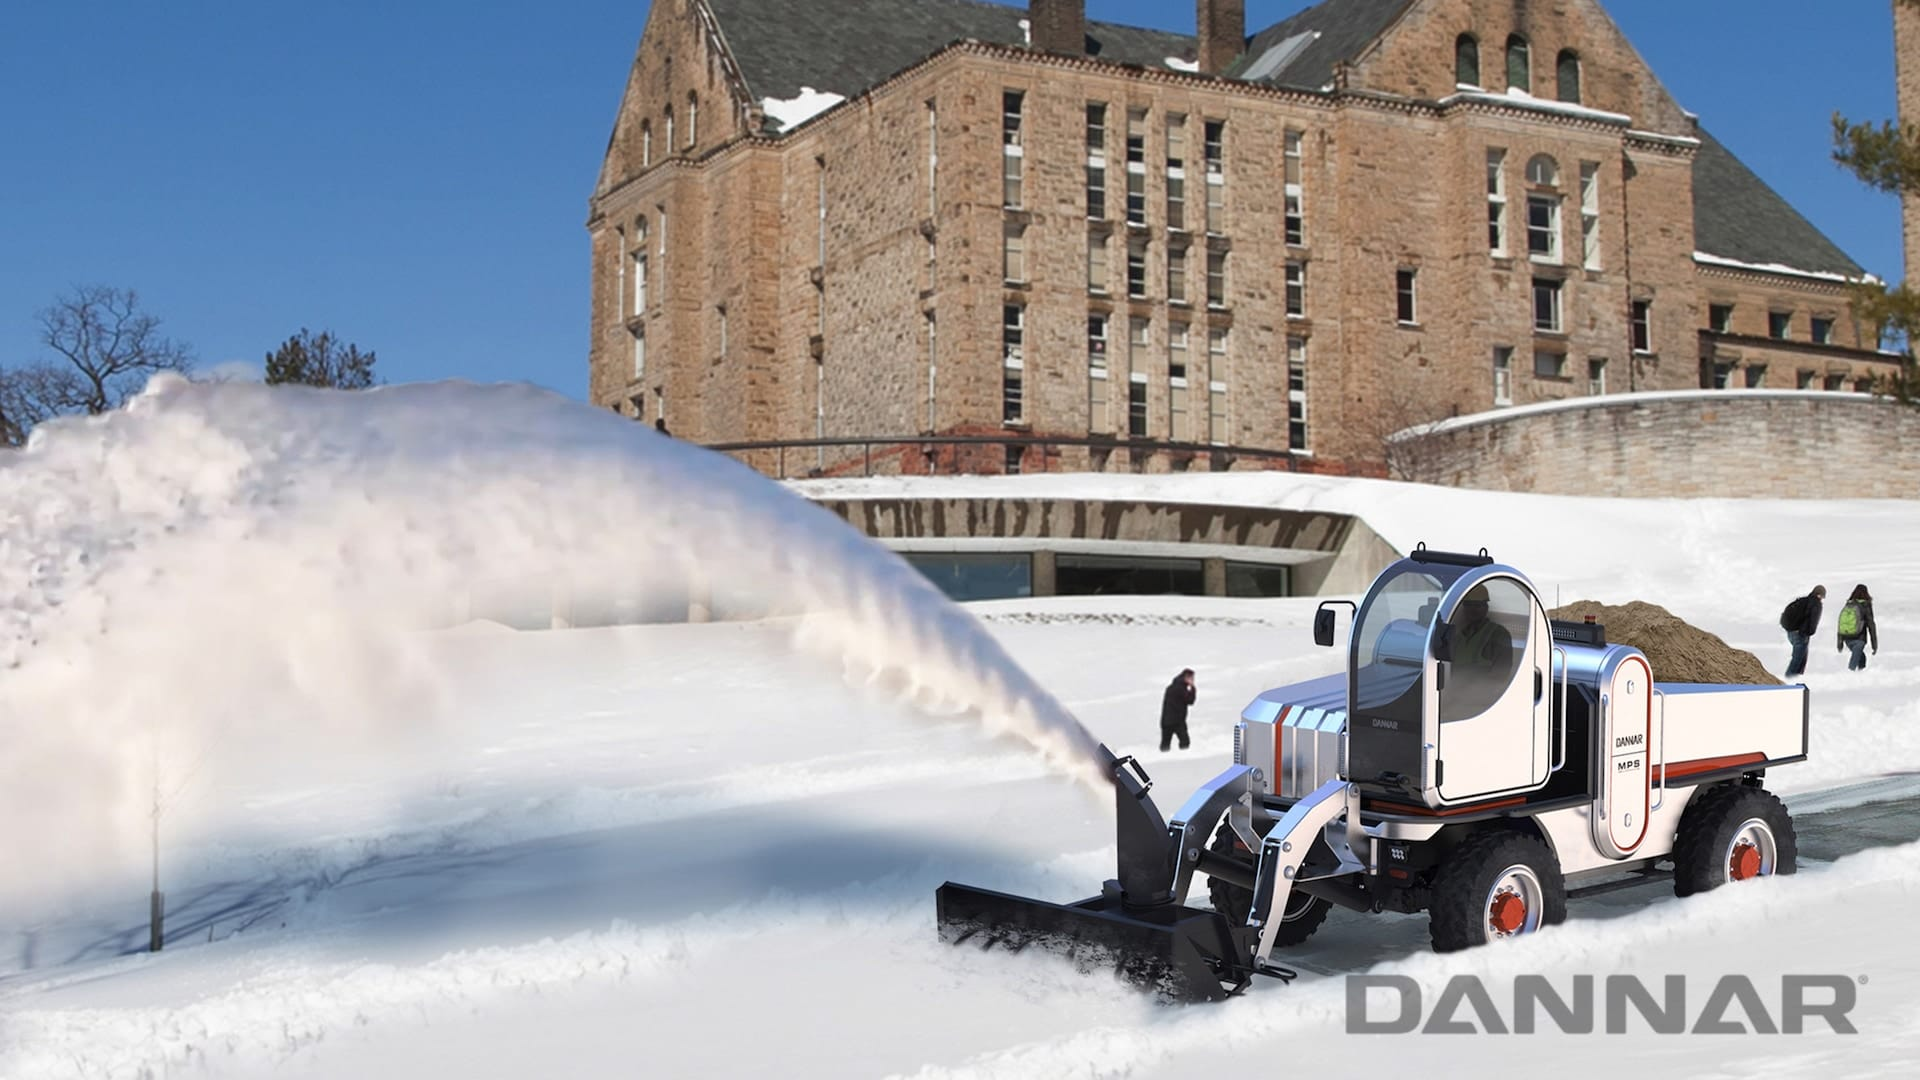 DANNAR 400 supporting vital infrastructure by clearing snow on a college campus